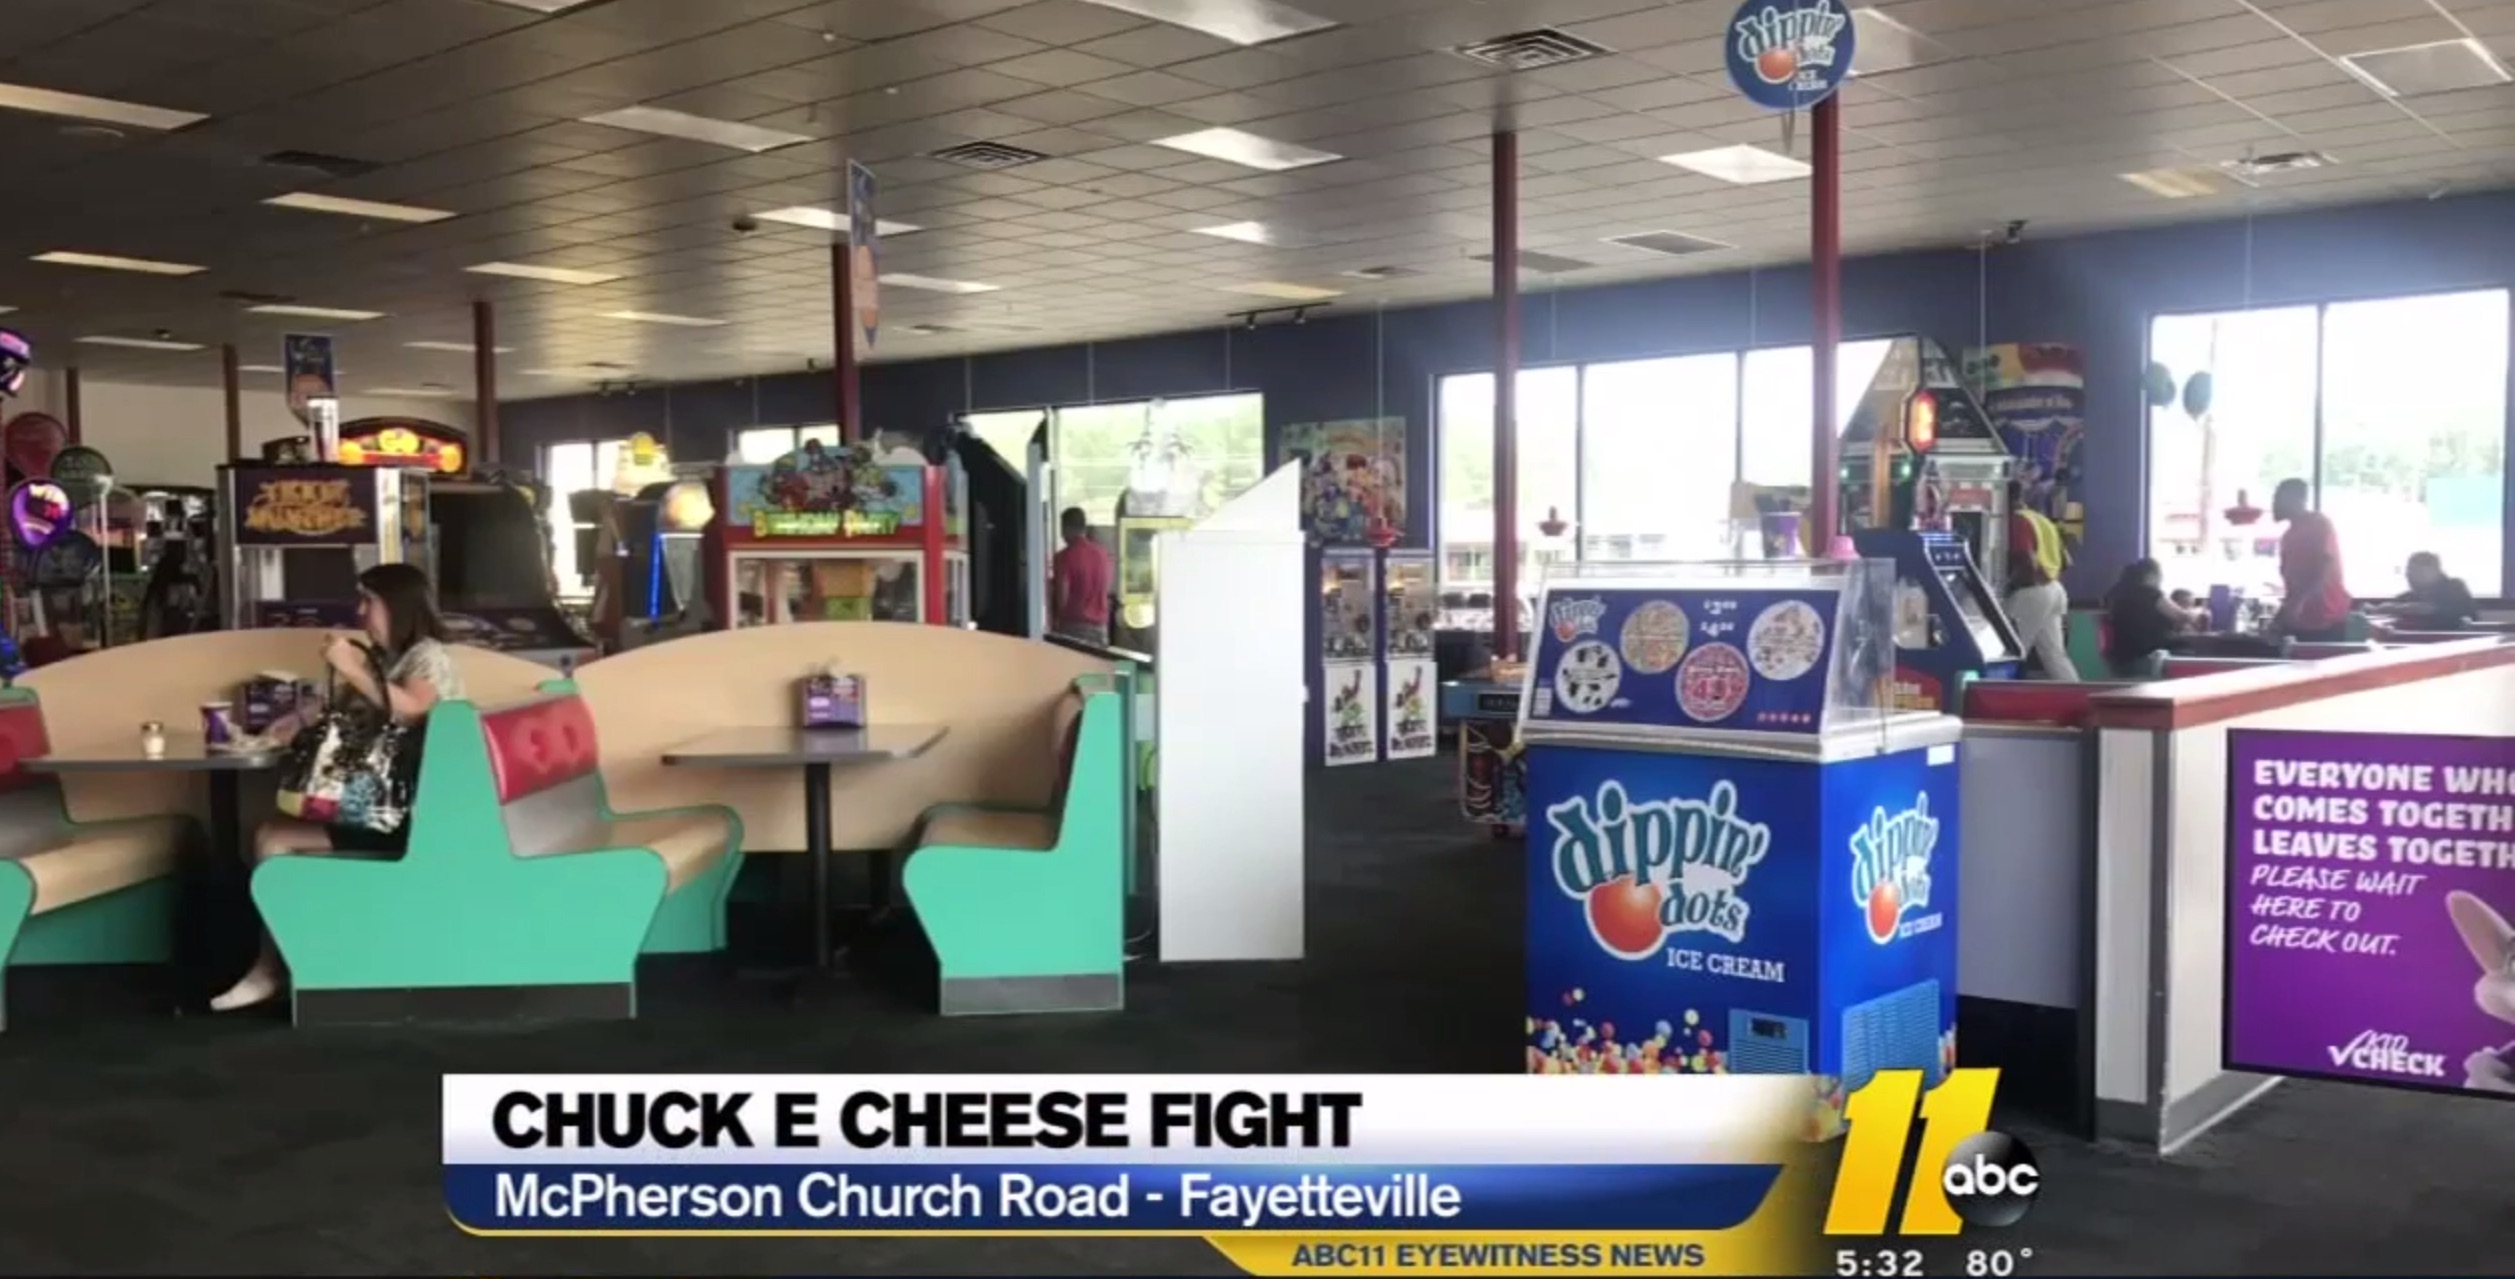 4 Adults Arrested In Yet Another Kiddie Party Brawl At Chuck E. Cheese's